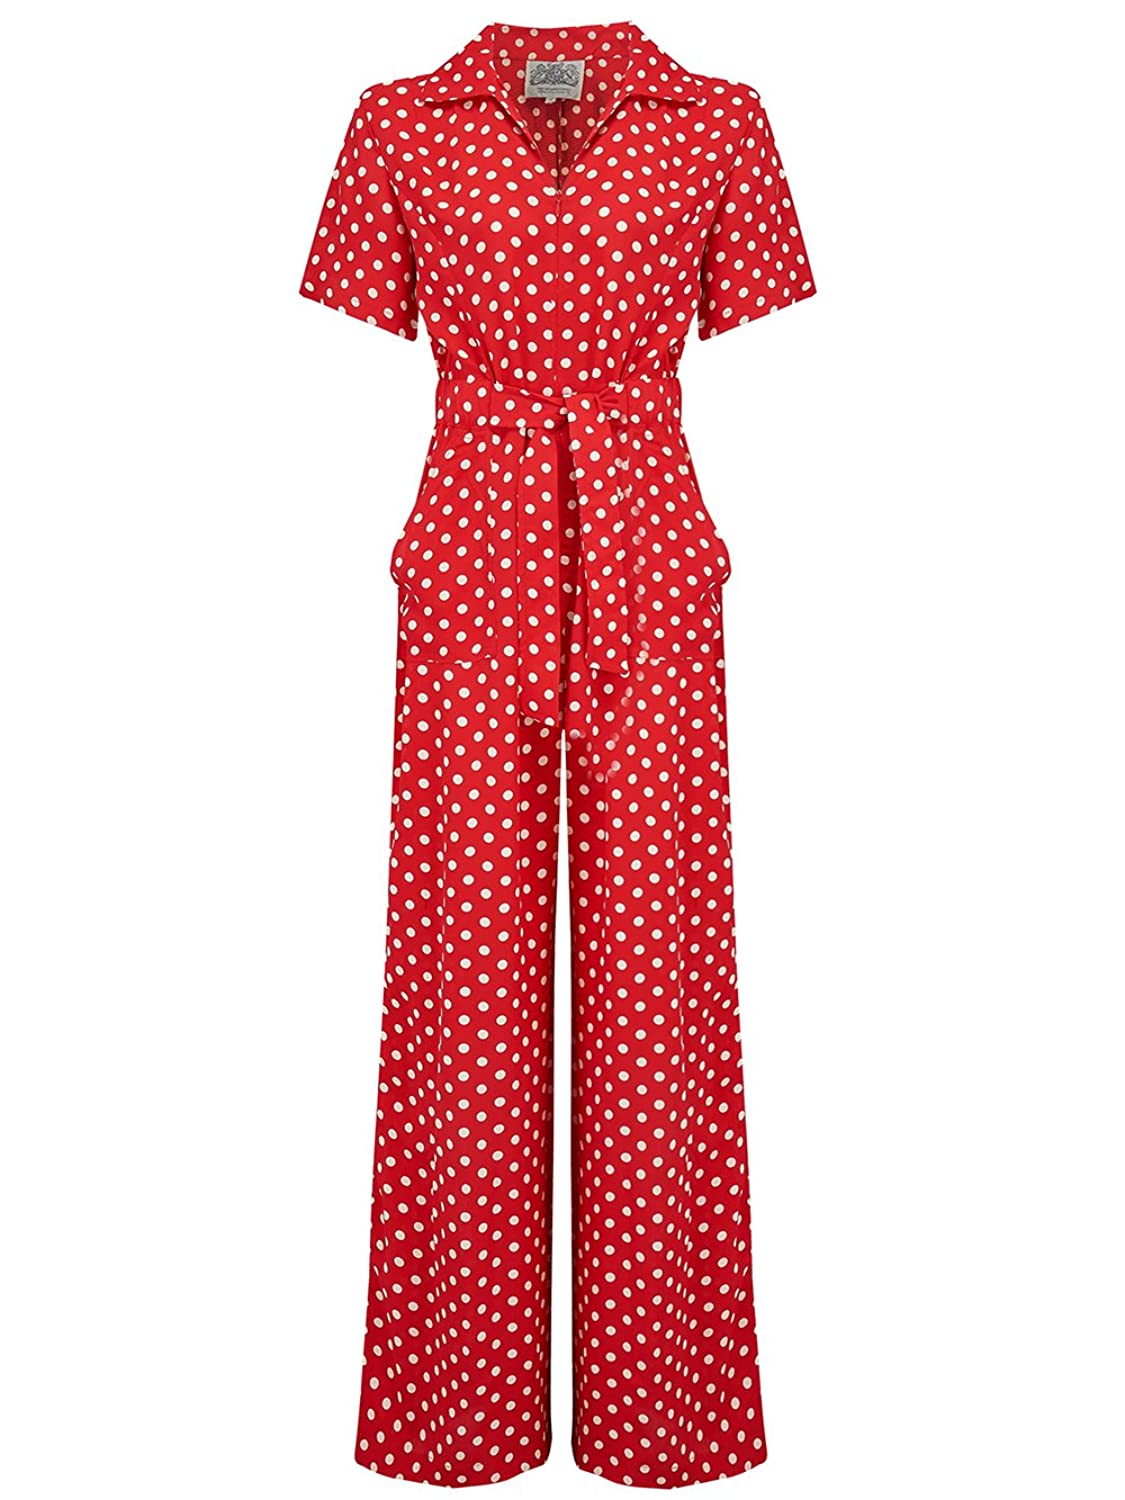 1940s Swing Pants & Sailor Trousers- Wide Leg, High Waist 1940s Vintage Inspired Lauren jumpsuit in Red Spot by The Seamstress of Bloomsbury £89.00 AT vintagedancer.com